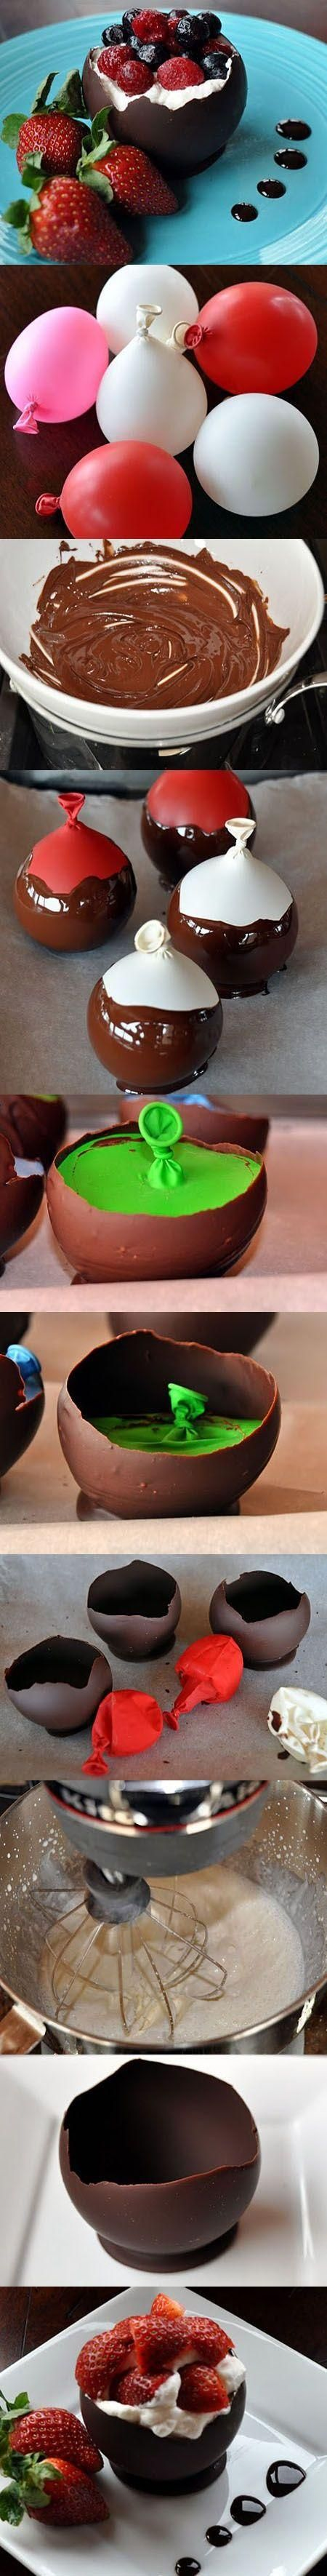 Chocolate Bowls DIY - #diy